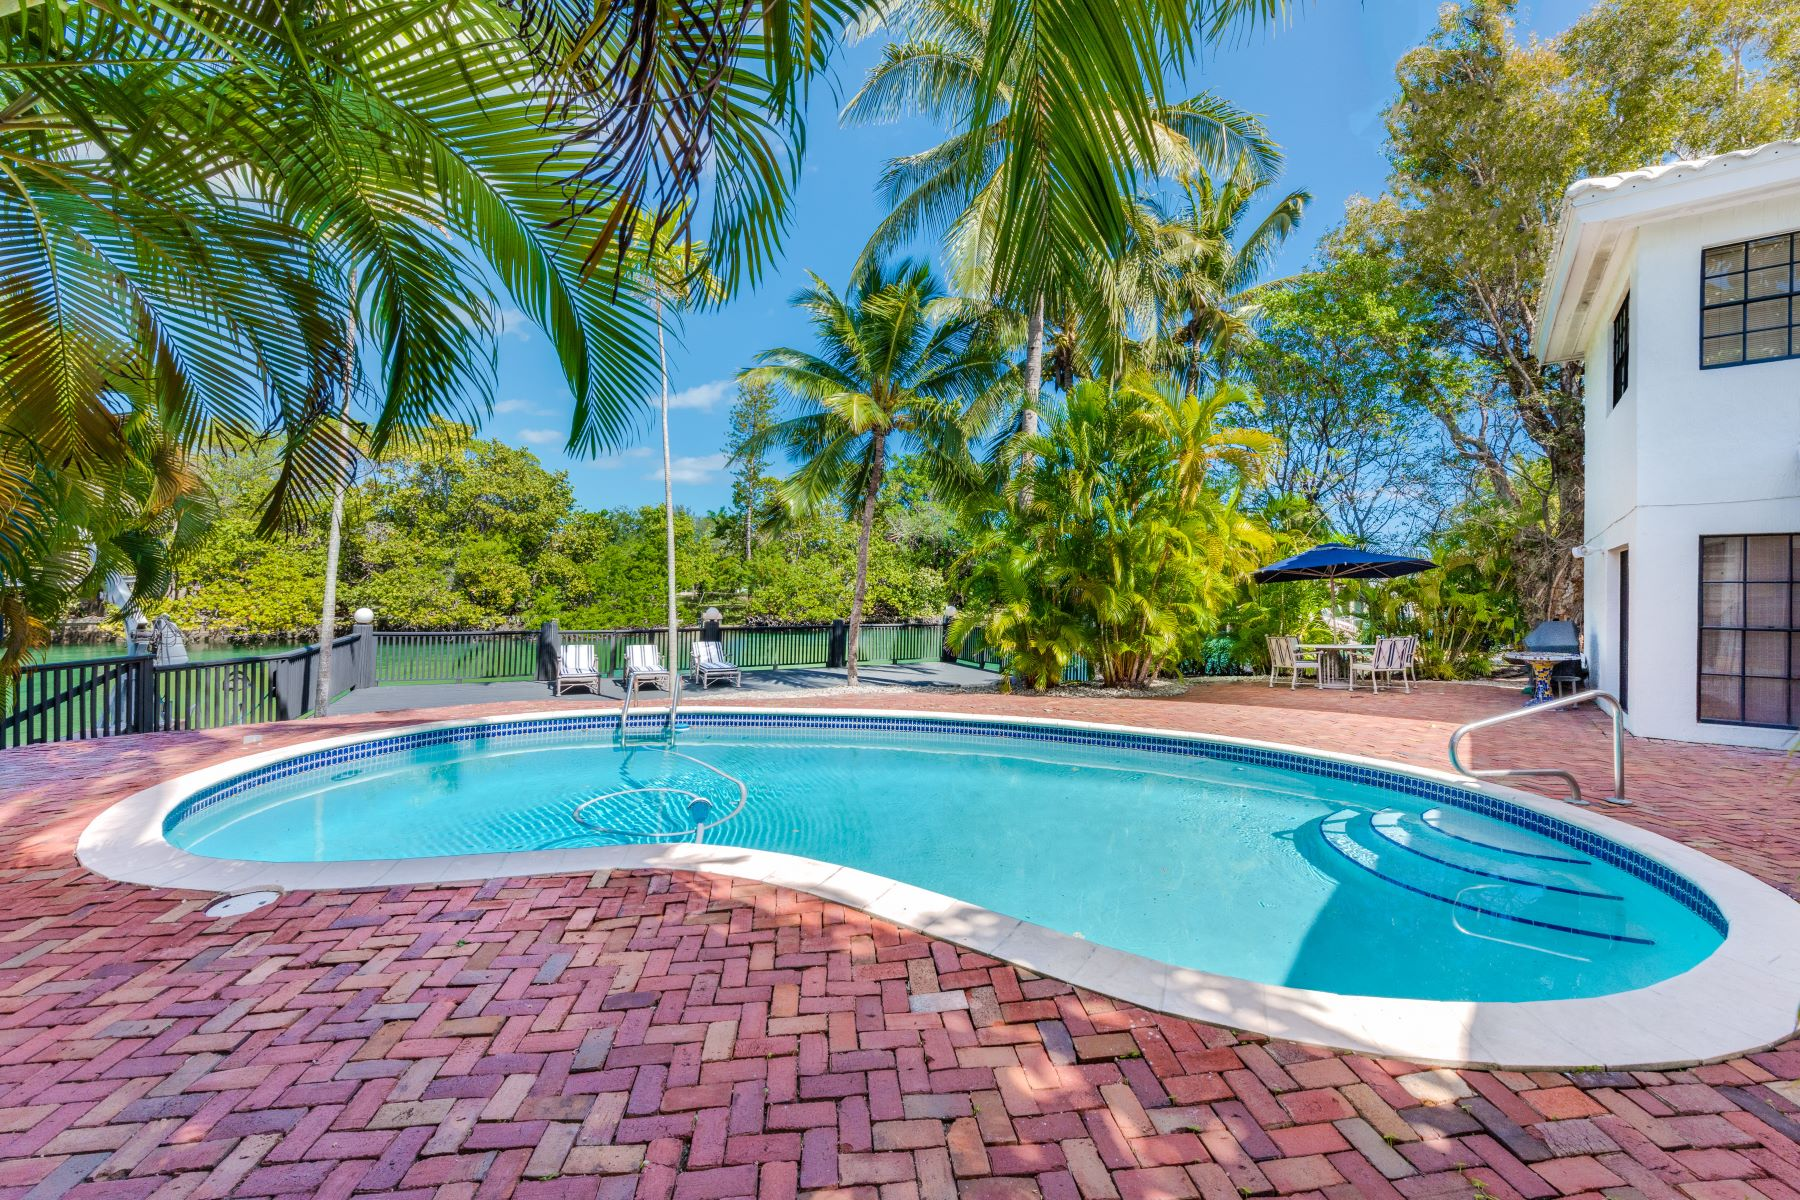 Single Family Home for Sale at 3172 N BAY RD Miami Beach, Florida, 33140 United States